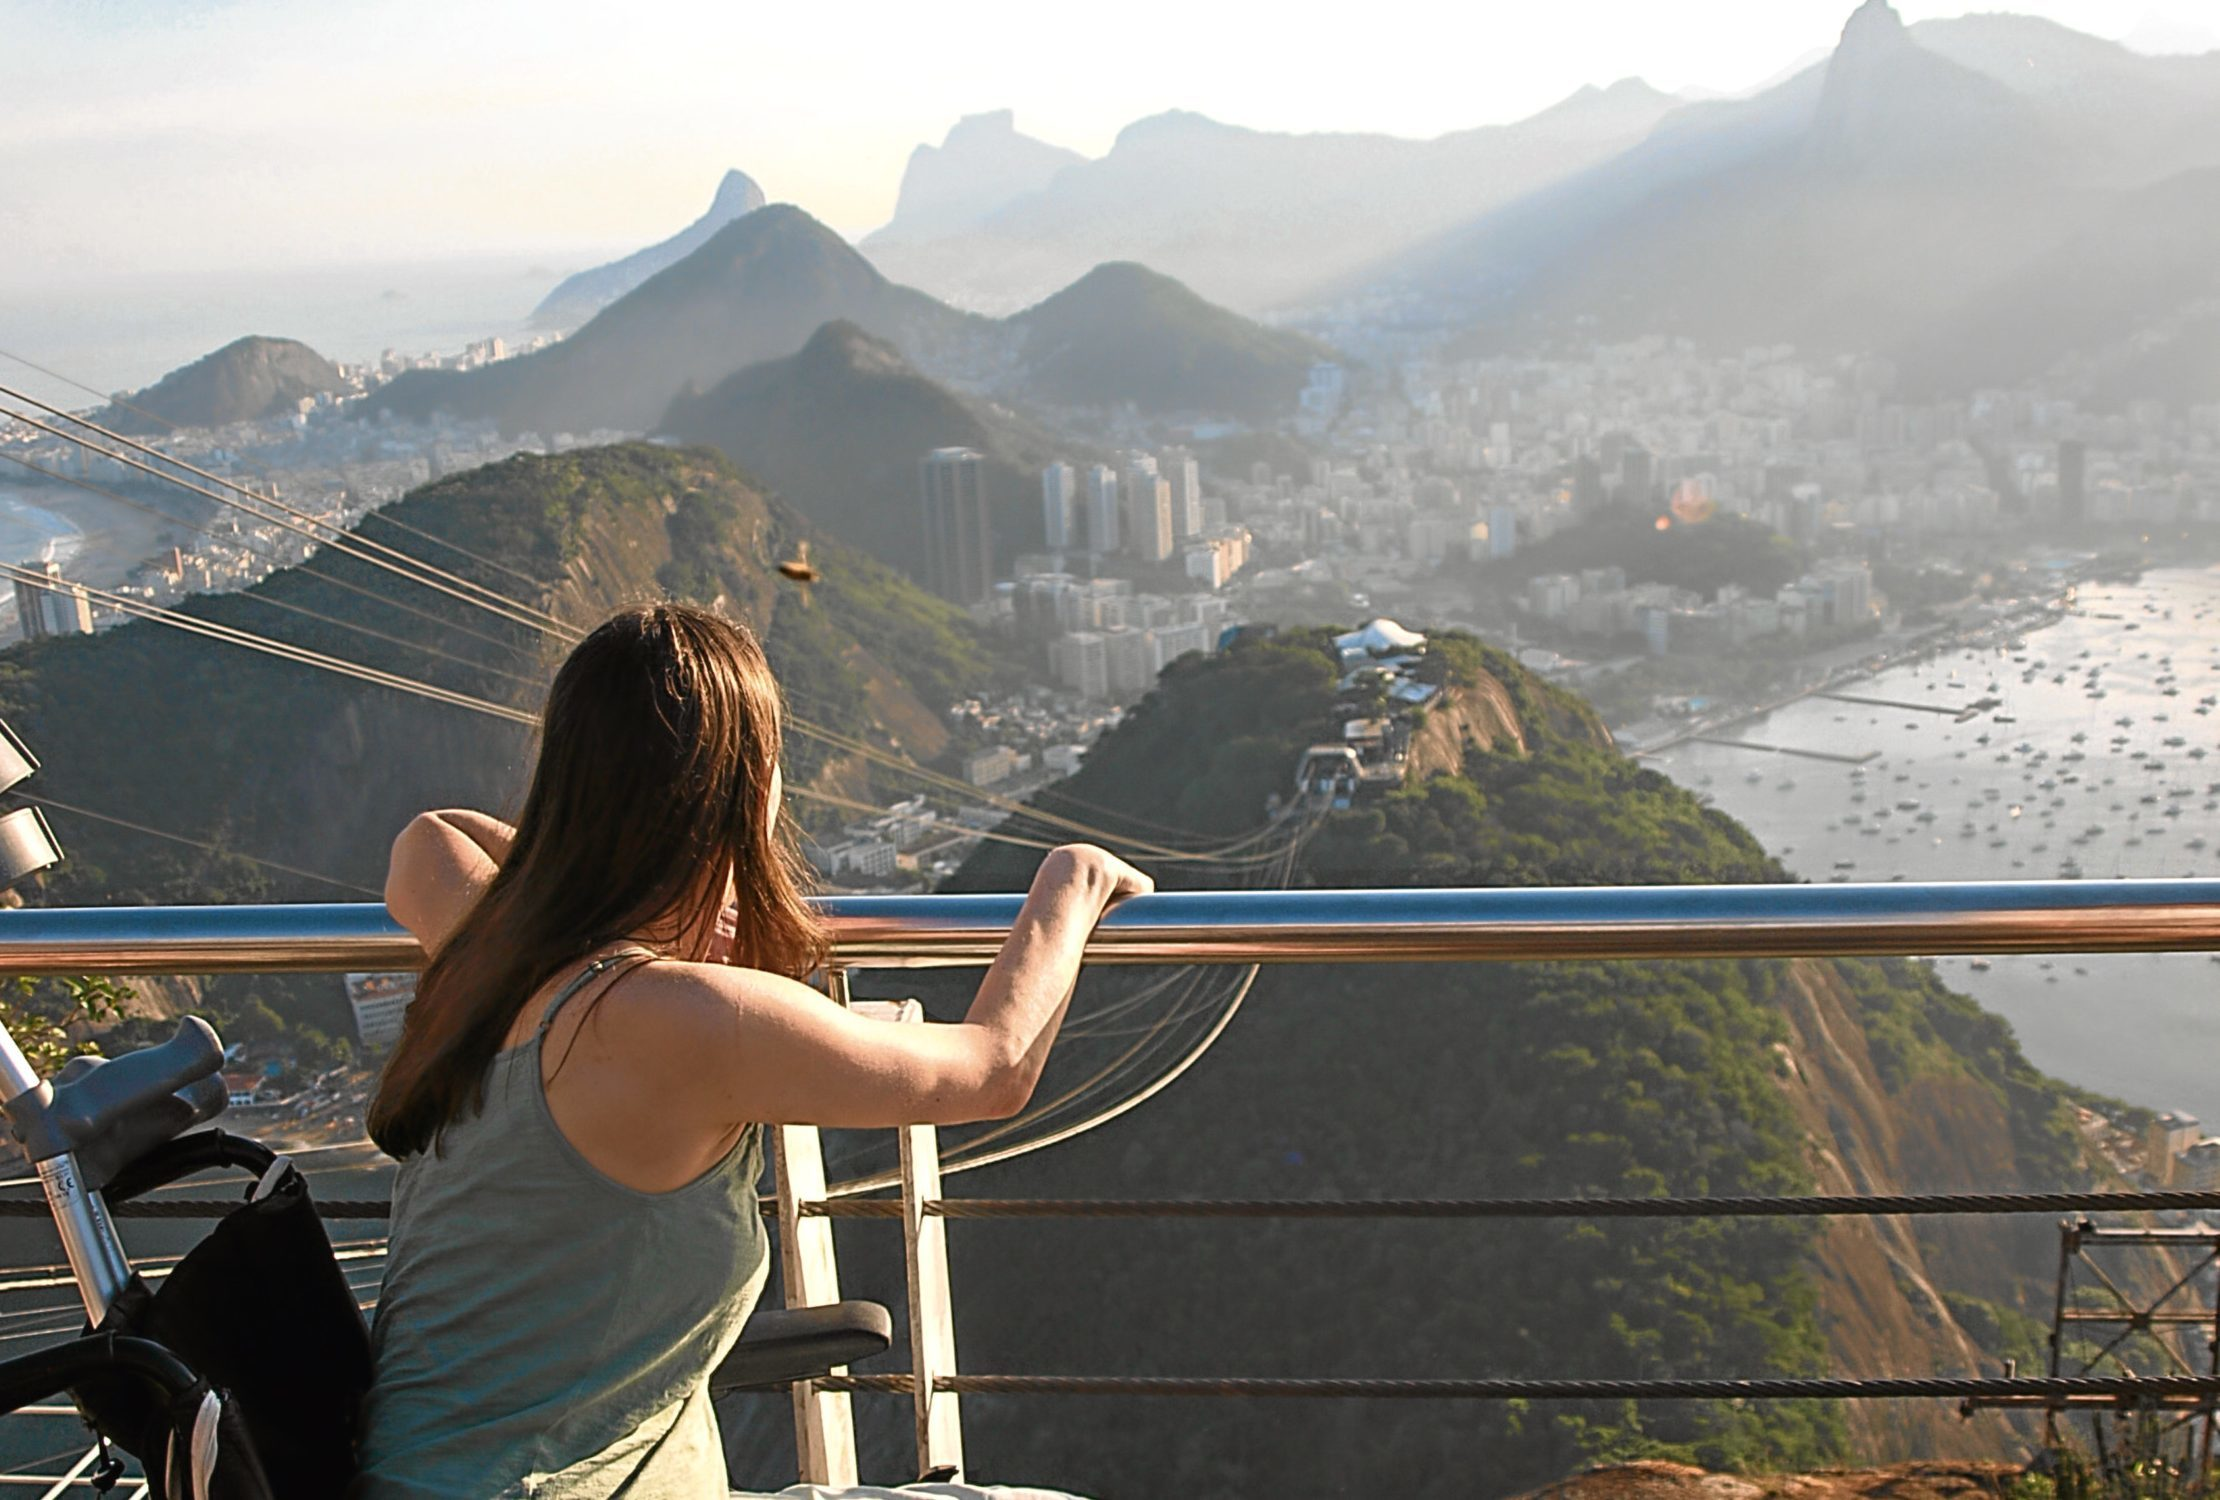 Susie loved to travel before her diagnosis, and still does, visiting places like Rio.